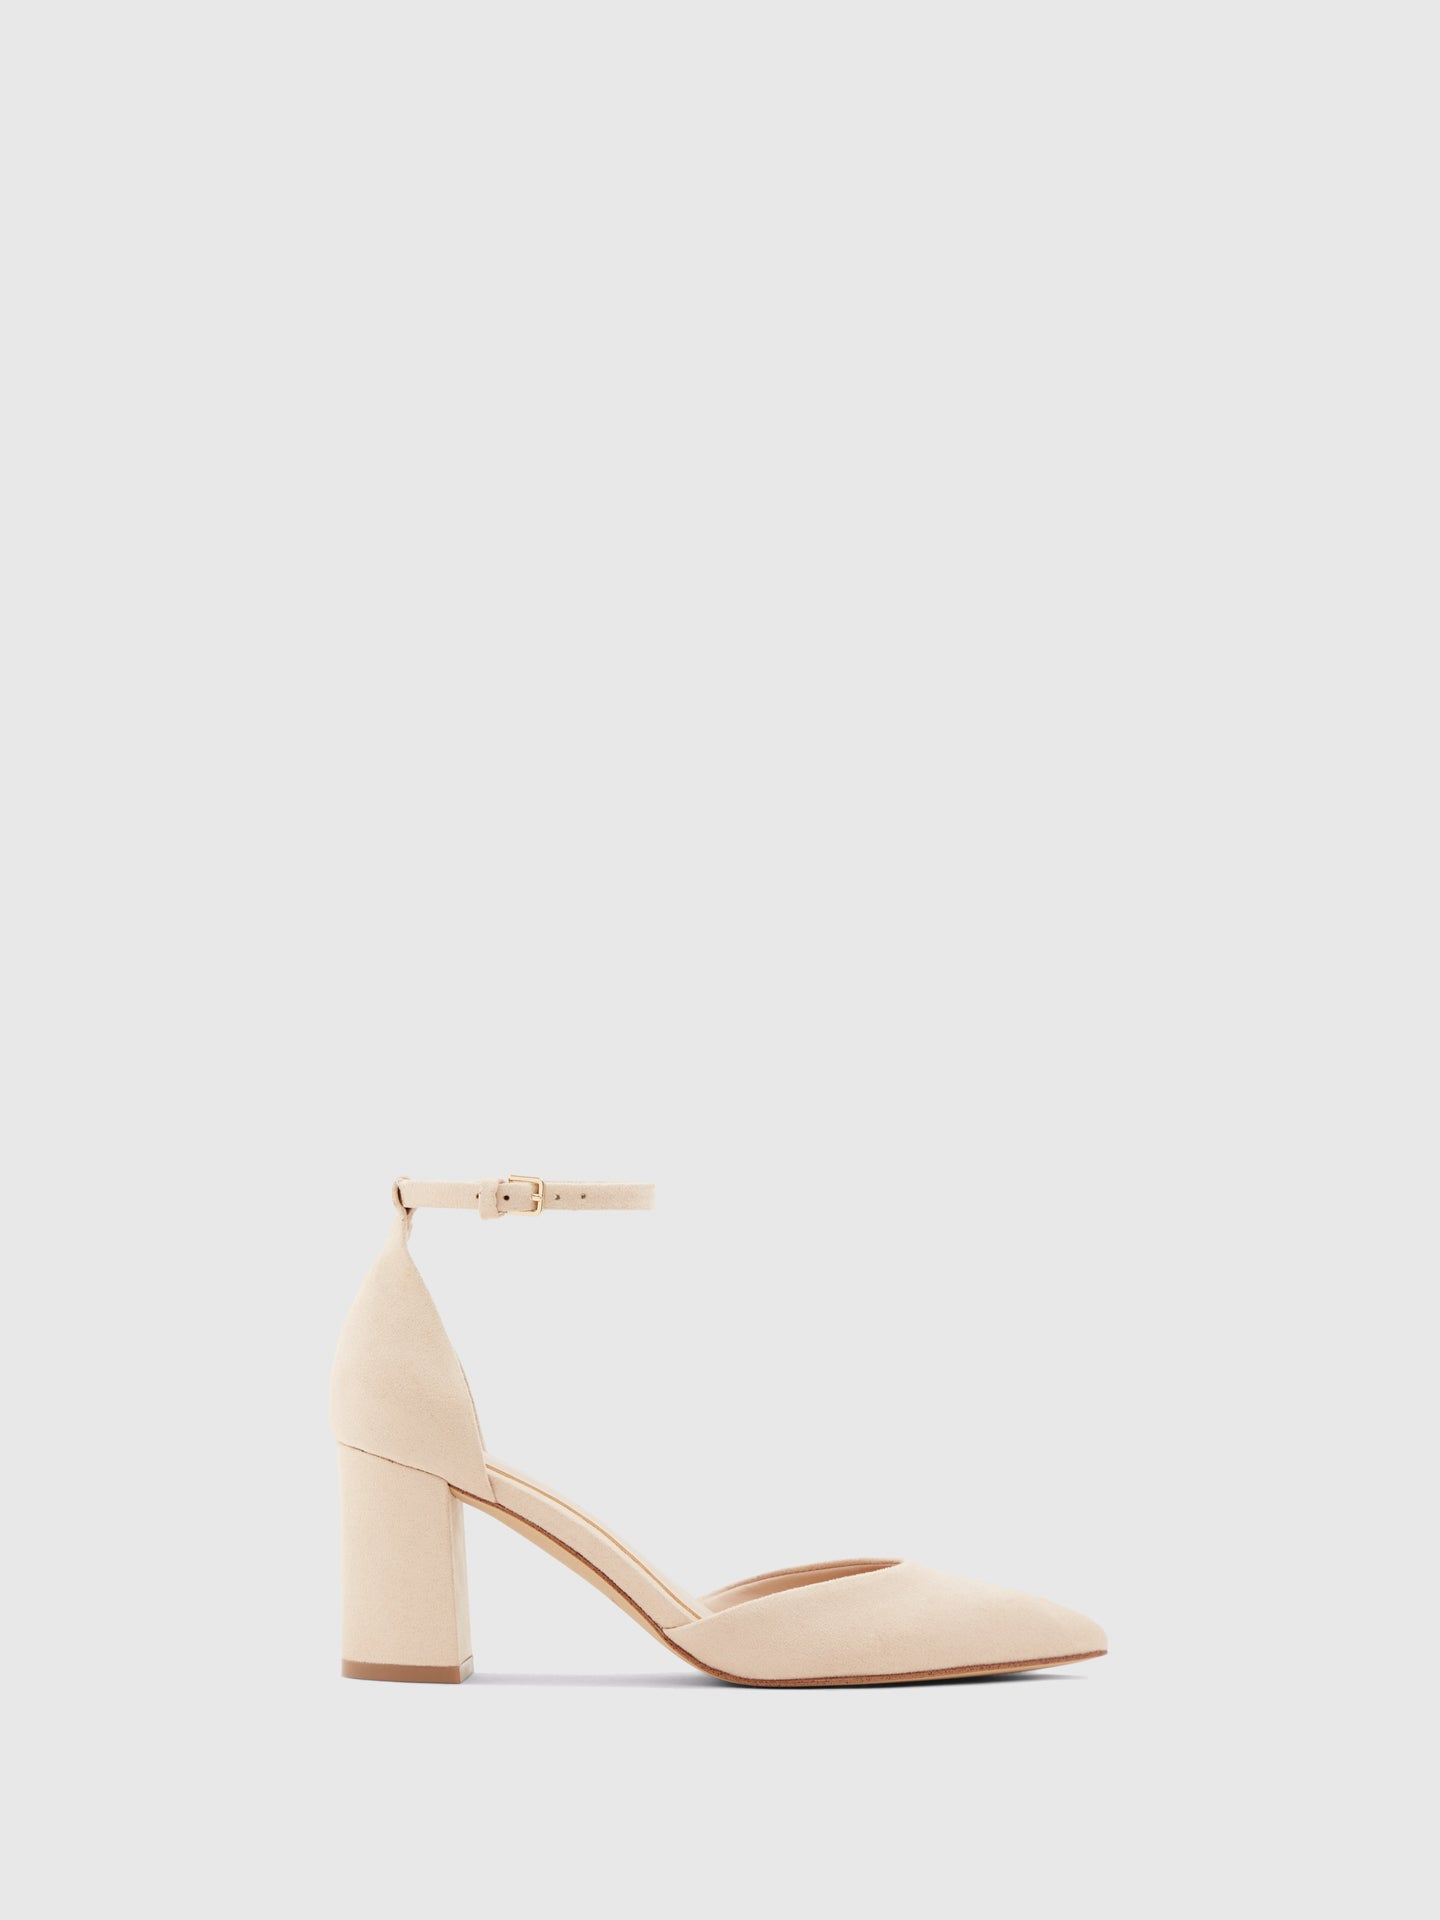 Aldo LightPink Ankle Strap Pumps